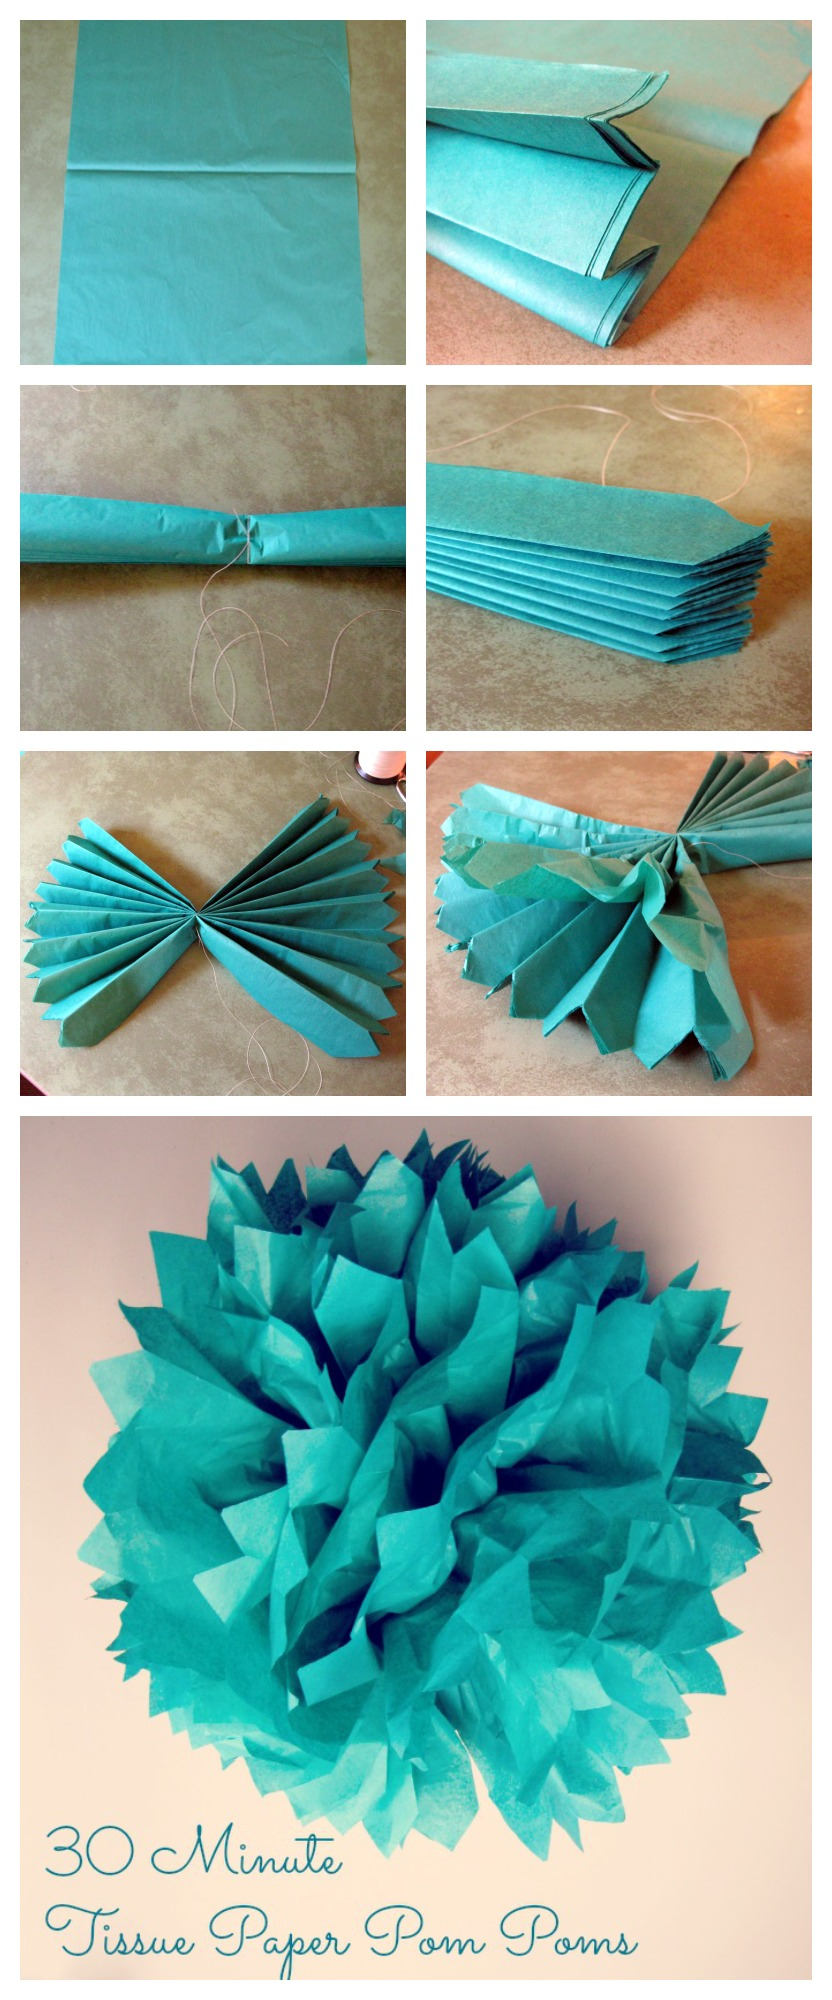 where to buy tissue paper pom poms Results 1 - 48 of 465 tissue paper pom poms fans honeycomb balls living room decor wedding party baby free express post buy over $40✓ 33 colours✓ 5 sizes✓ au $100 ebay premium service free postage 58 sold.